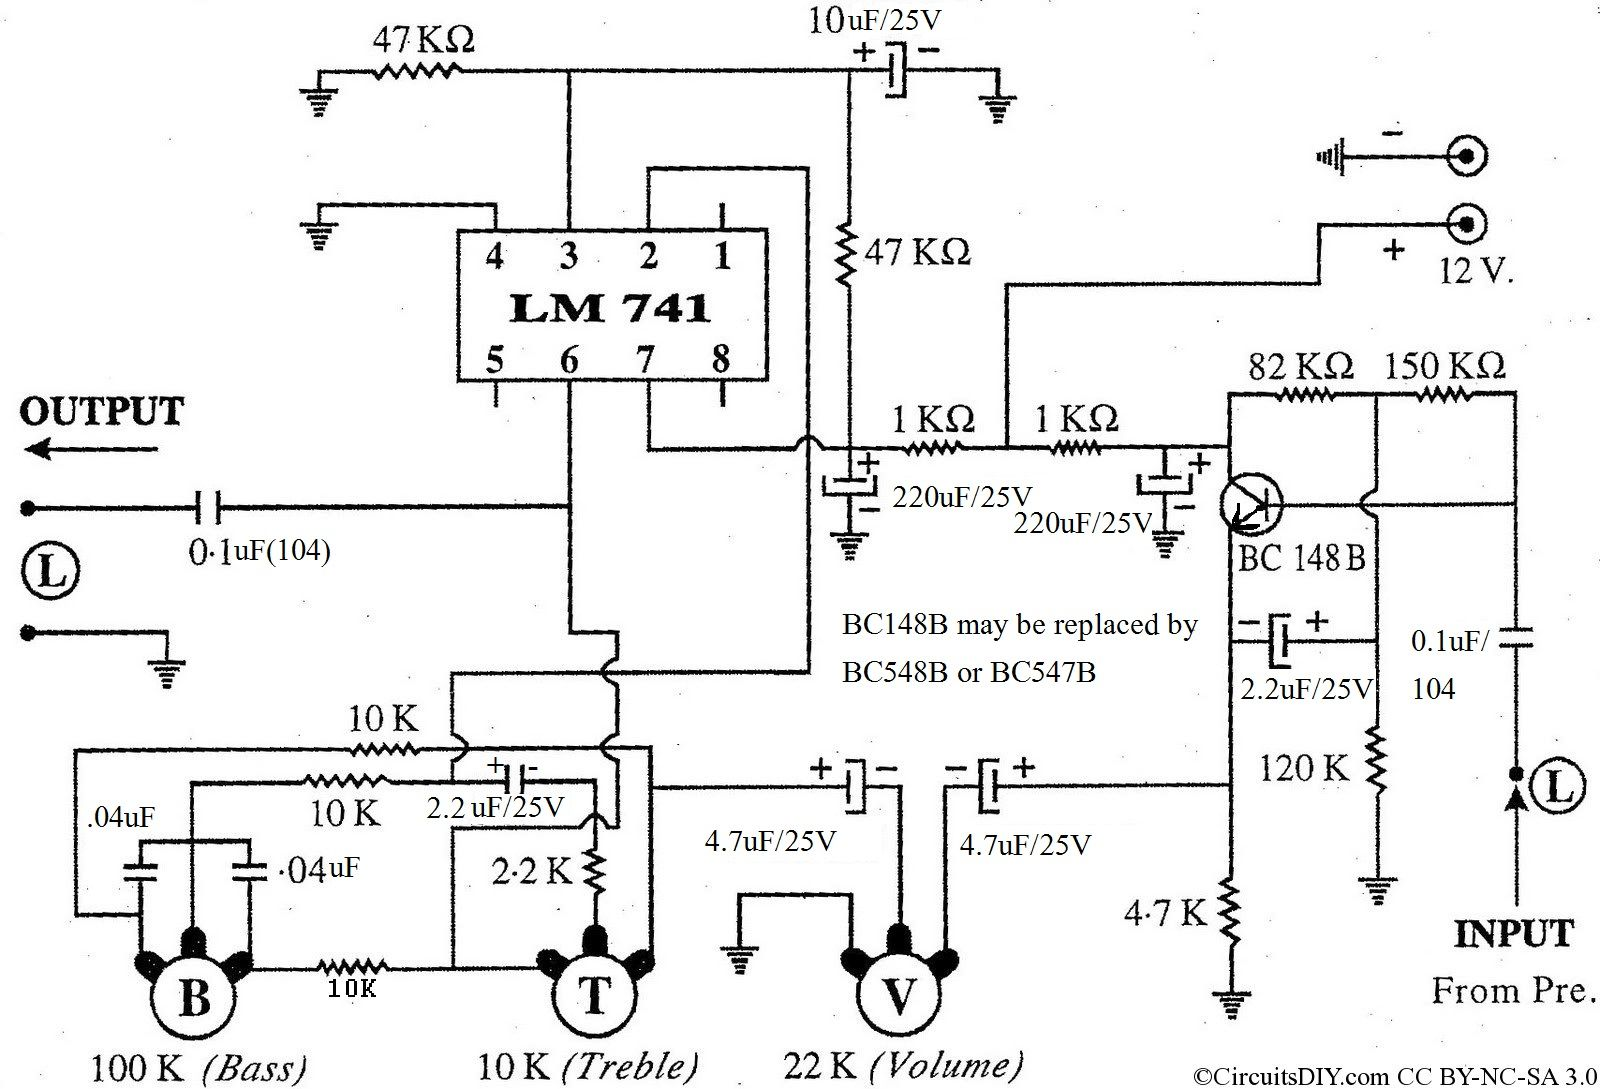 how to understand a circuit schematic guitar pedals